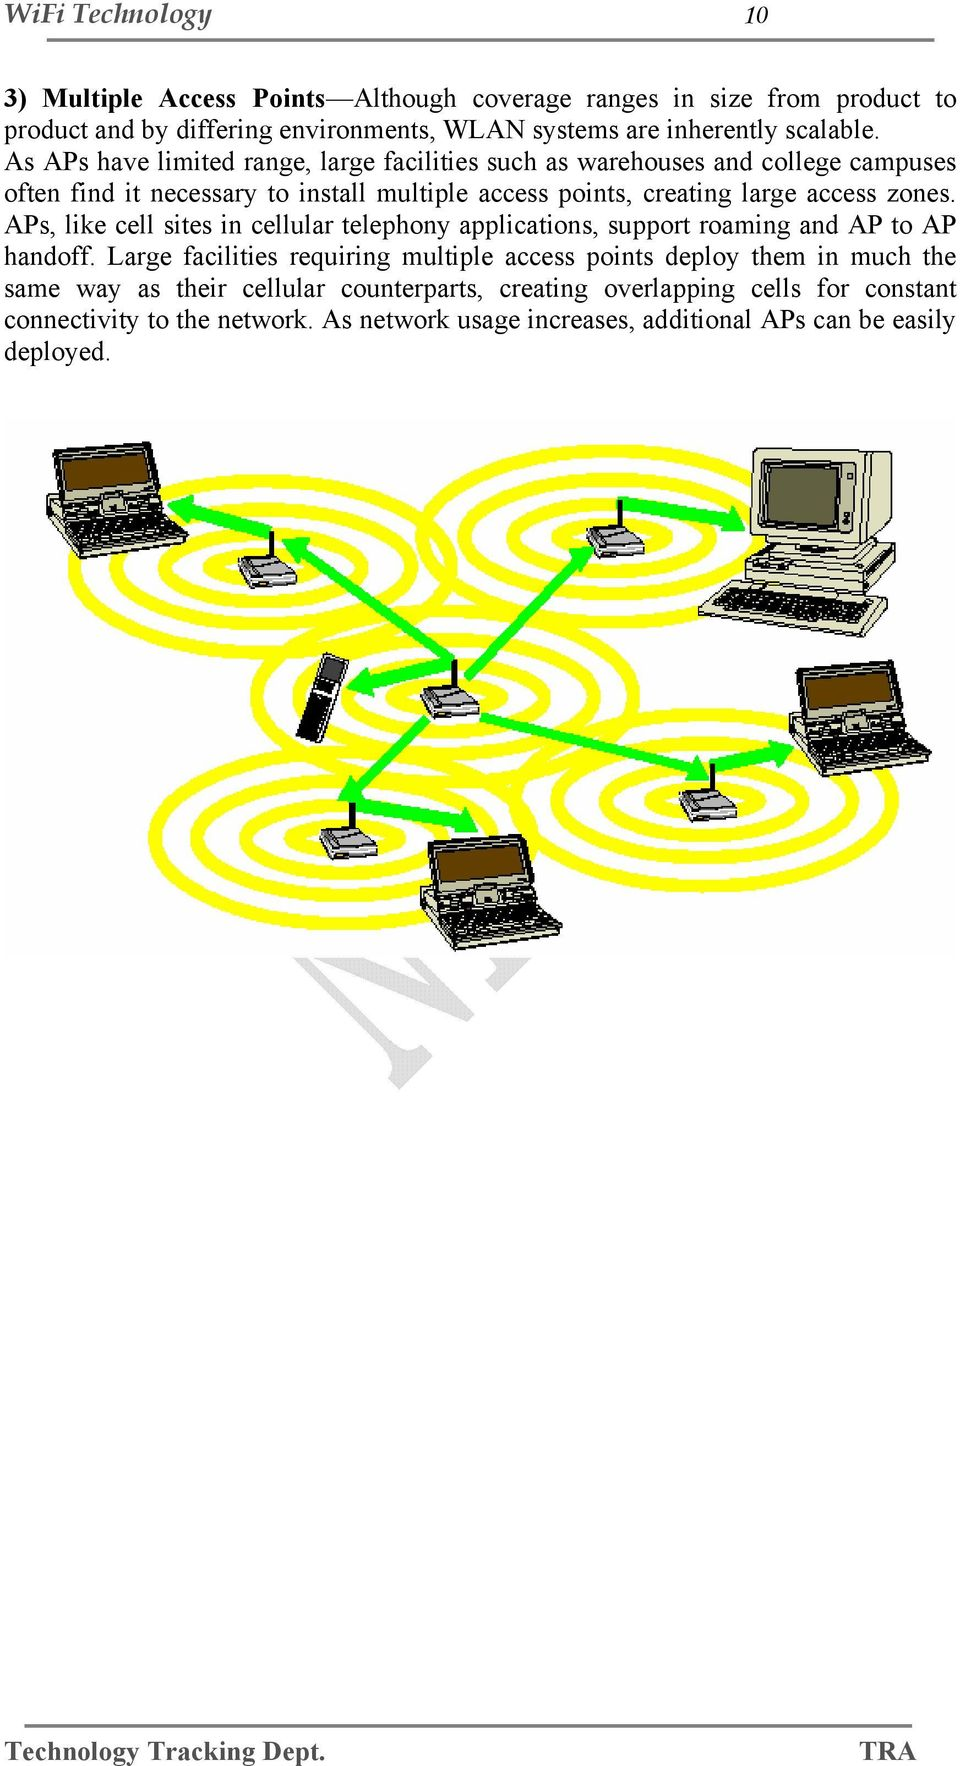 APs, like cell sites in cellular telephony applications, support roaming and AP to AP handoff.